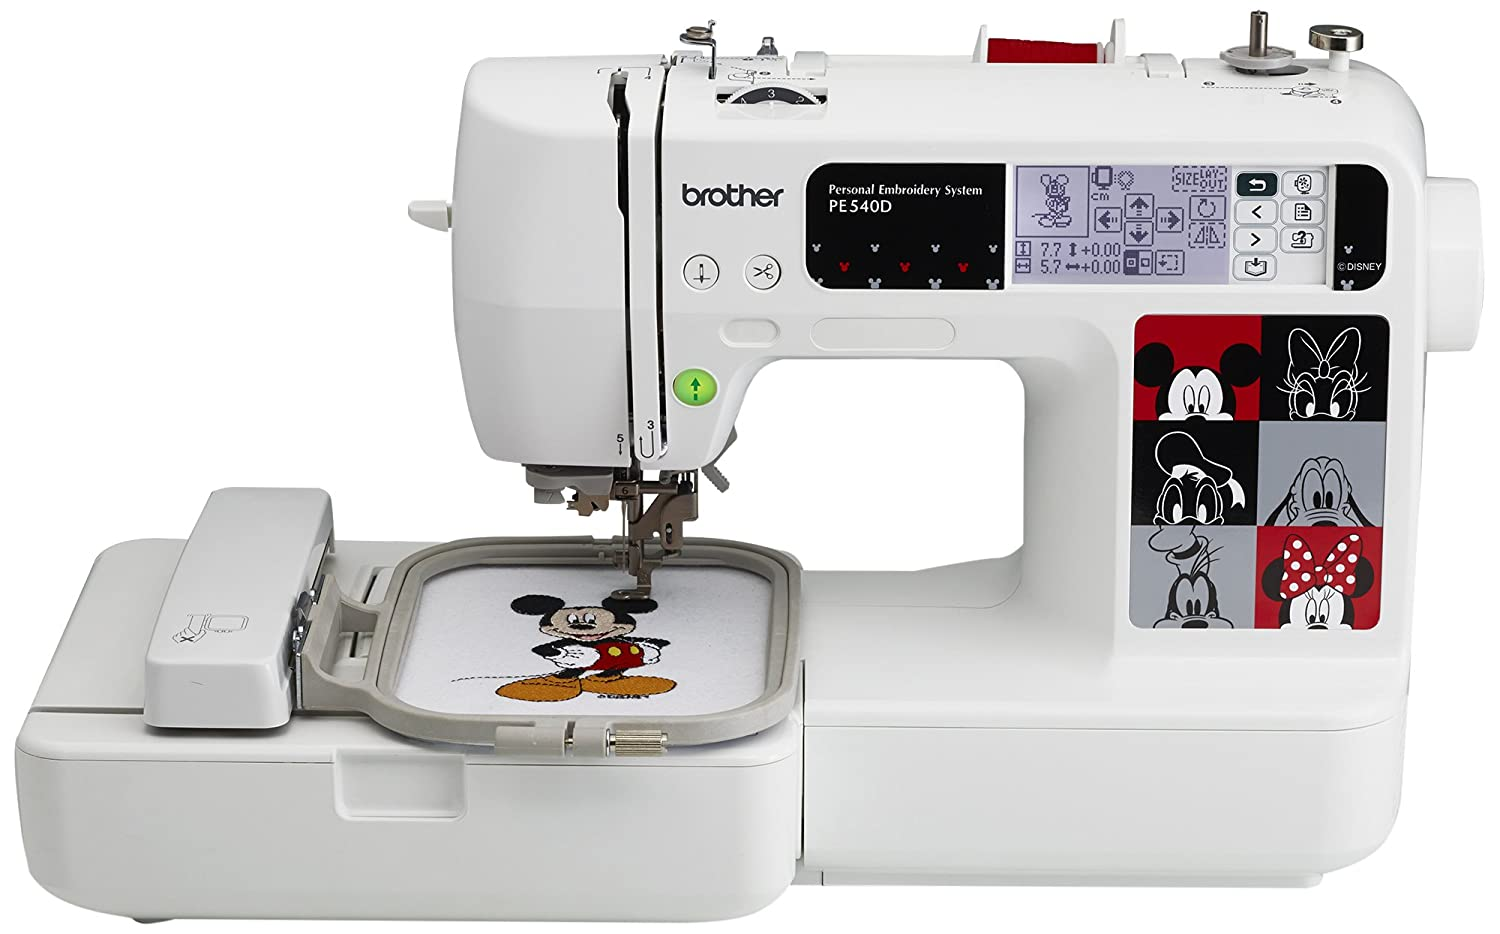 SBrother PE540D 4x4 Embroidery Machine with 70 Built-in Decorative Designs, 35 Disney Designs, 5 Fonts